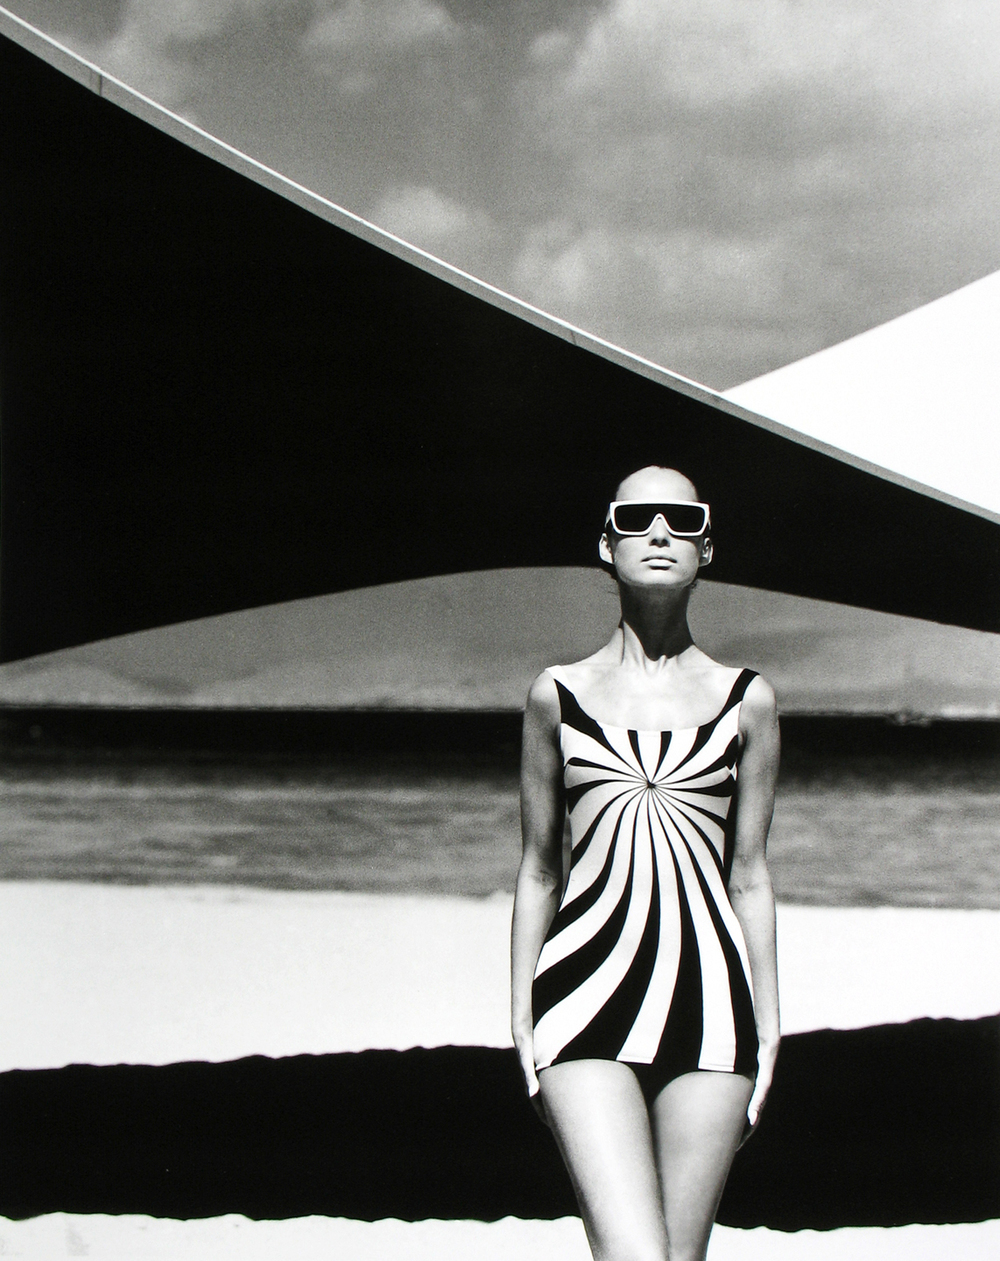 Op Art Swimsuit, Brigitte Bauer for Sinz, Vouliagmeni, Greece, 1966, F.C. Gundlach